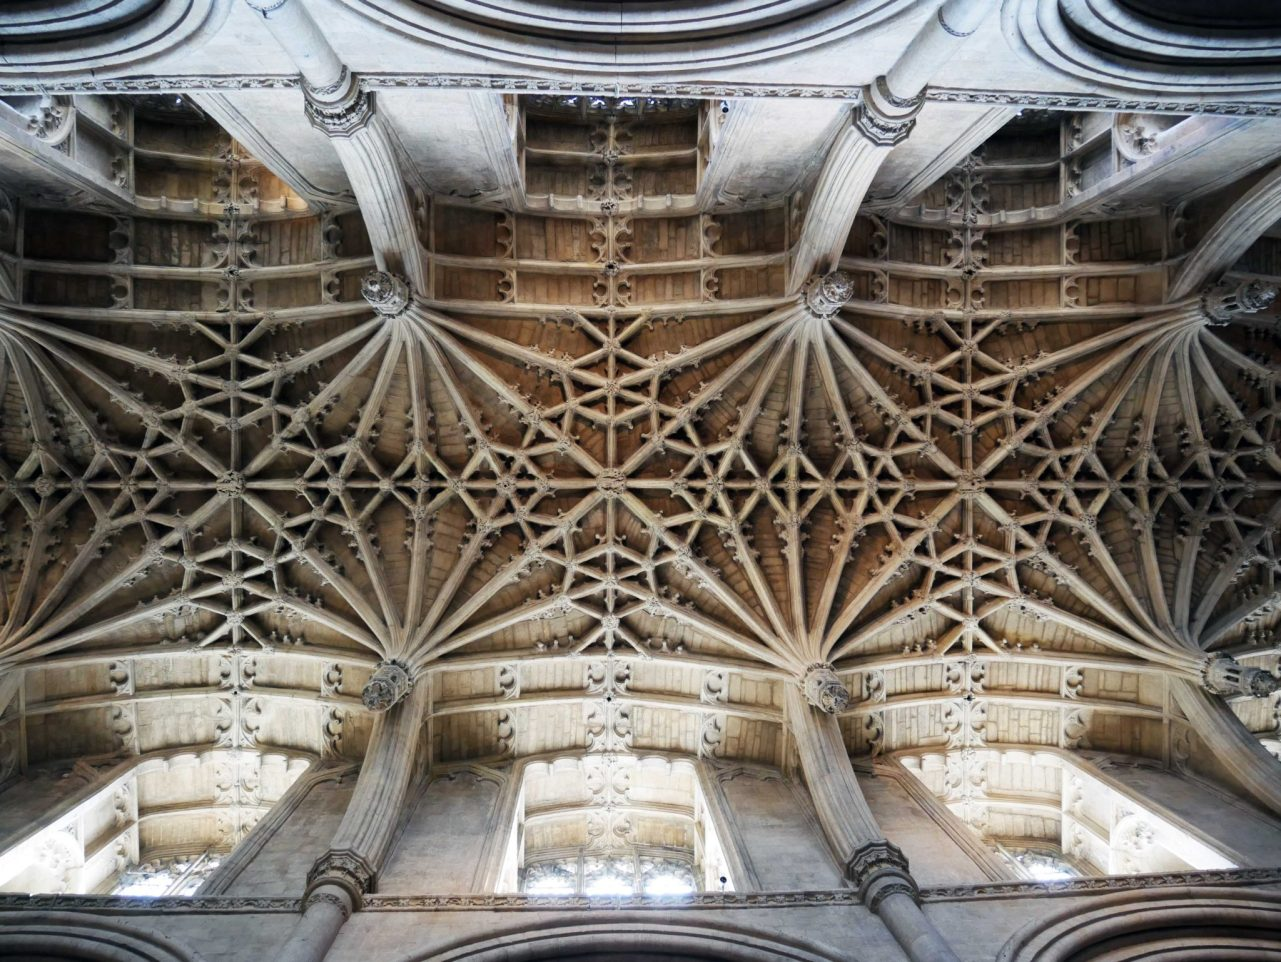 Christ Church College Cathedral, Oxford